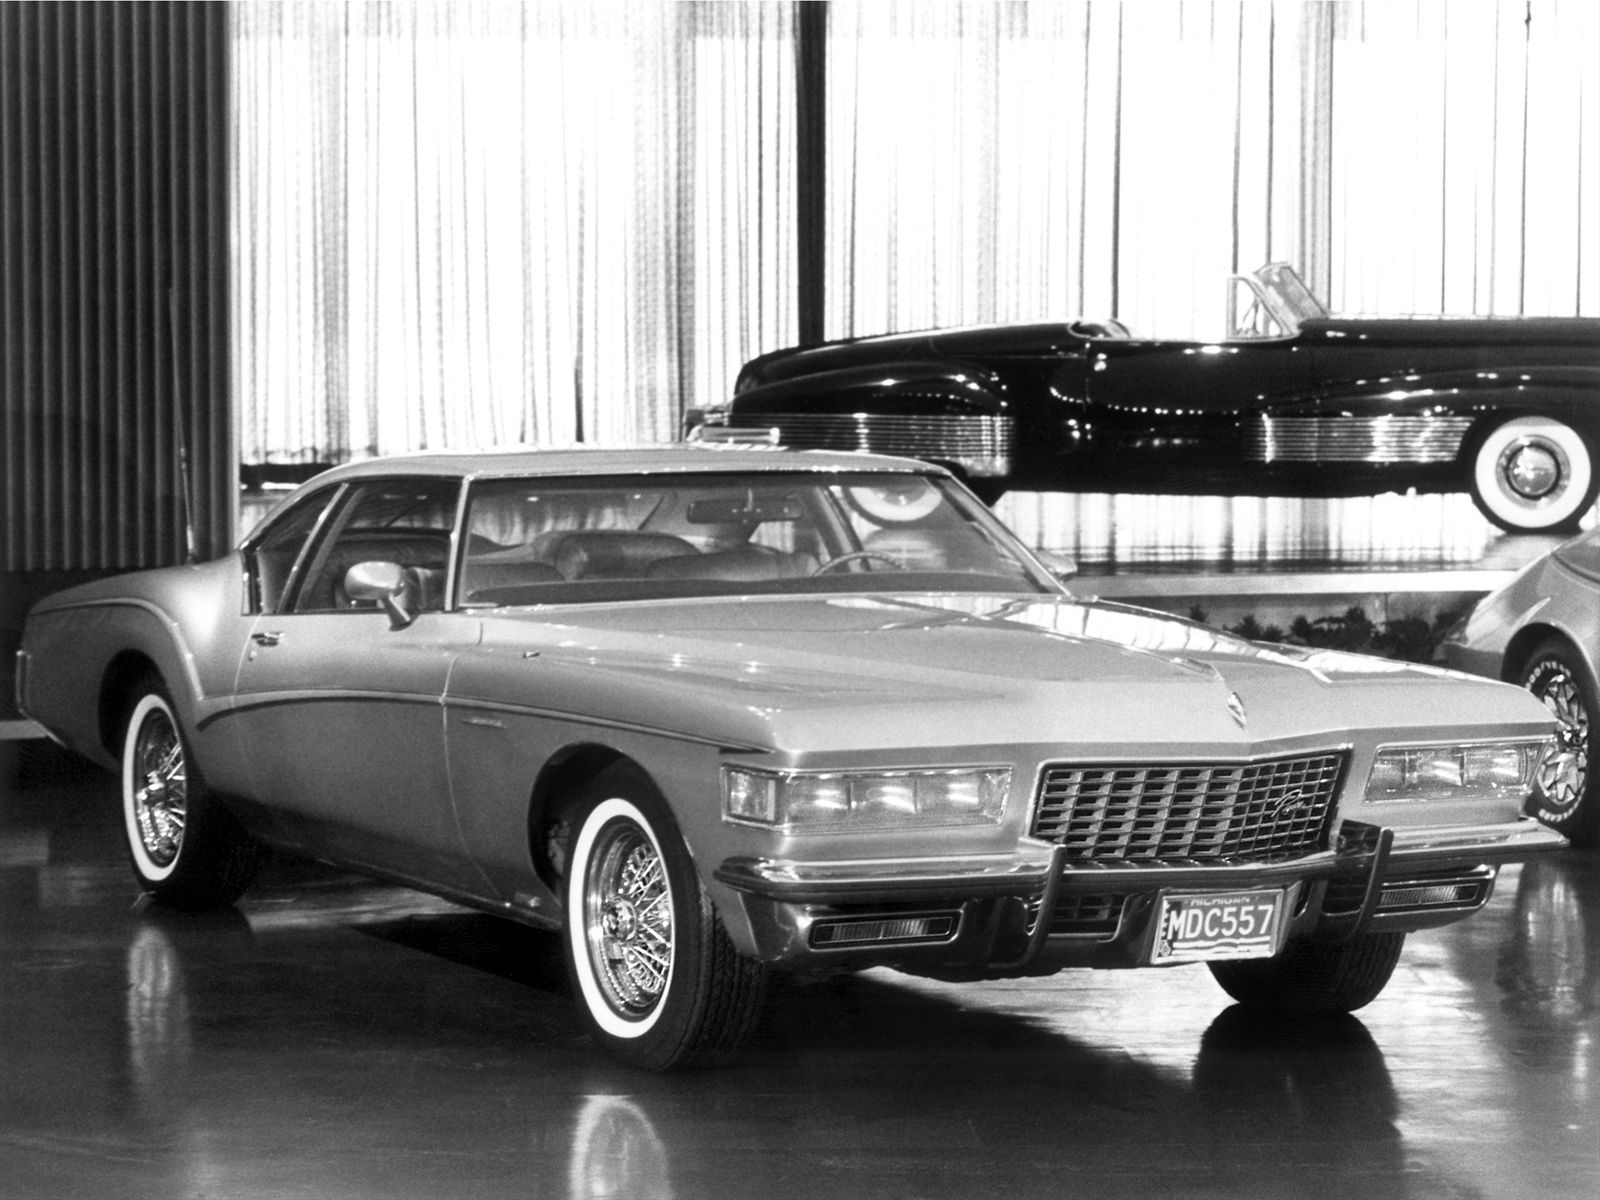 Bon The 1972 Silver Arrow III Buick Riviera Concept Was Designed By Bill  Mitchell And Introduced At The 1972 Detroit Auto.